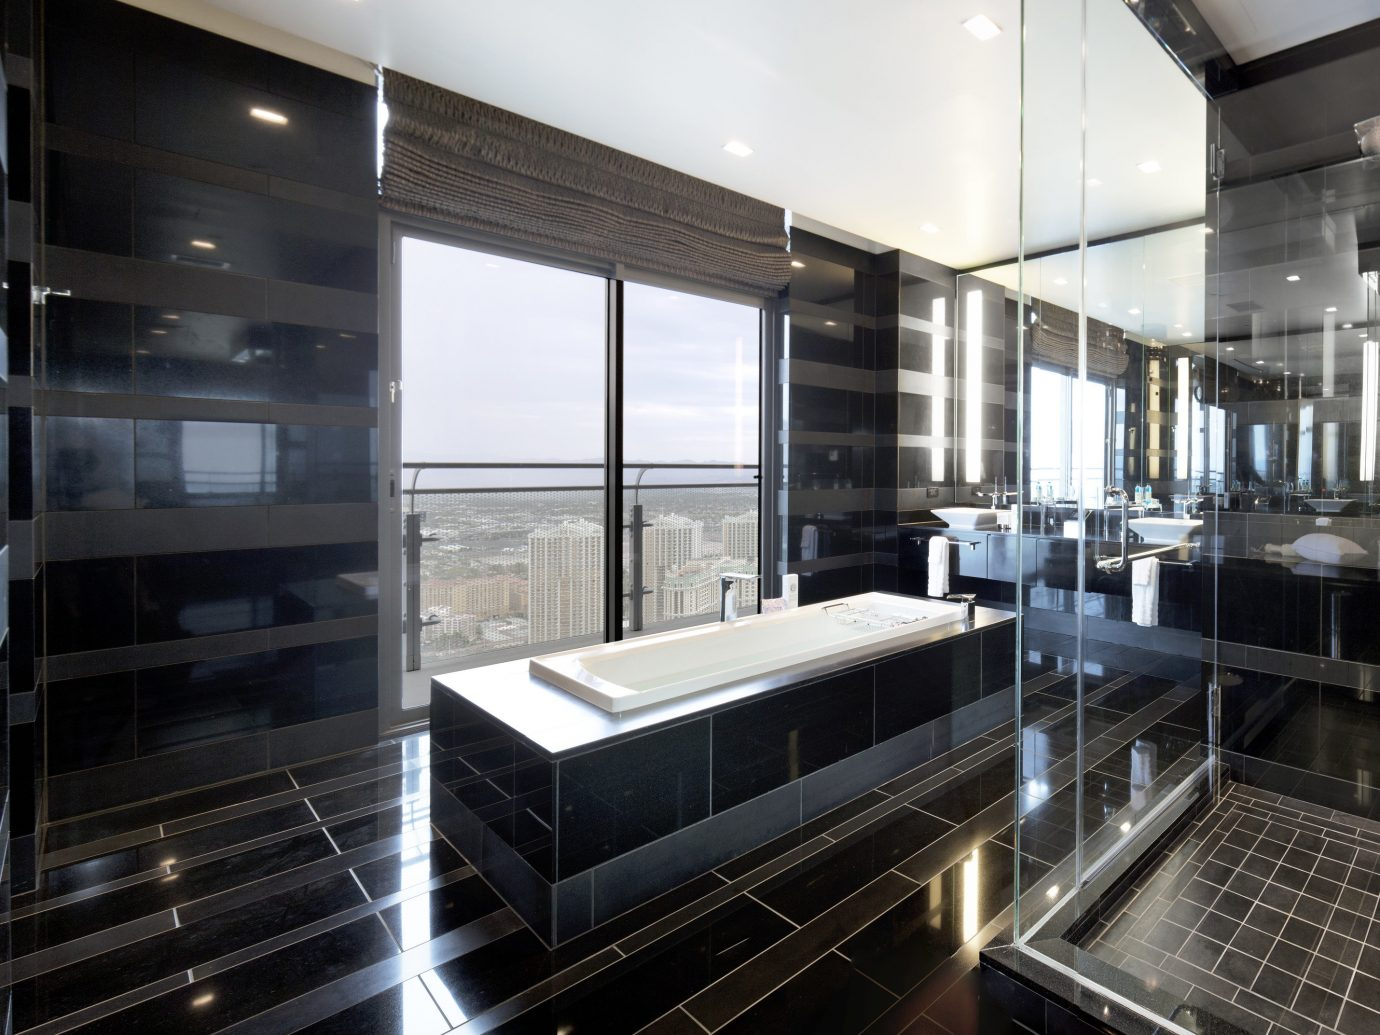 Bathtub overlooking las vegas in the Bentel & Bentel Penthouse Suites, The Cosmopolitan of Las Vegas